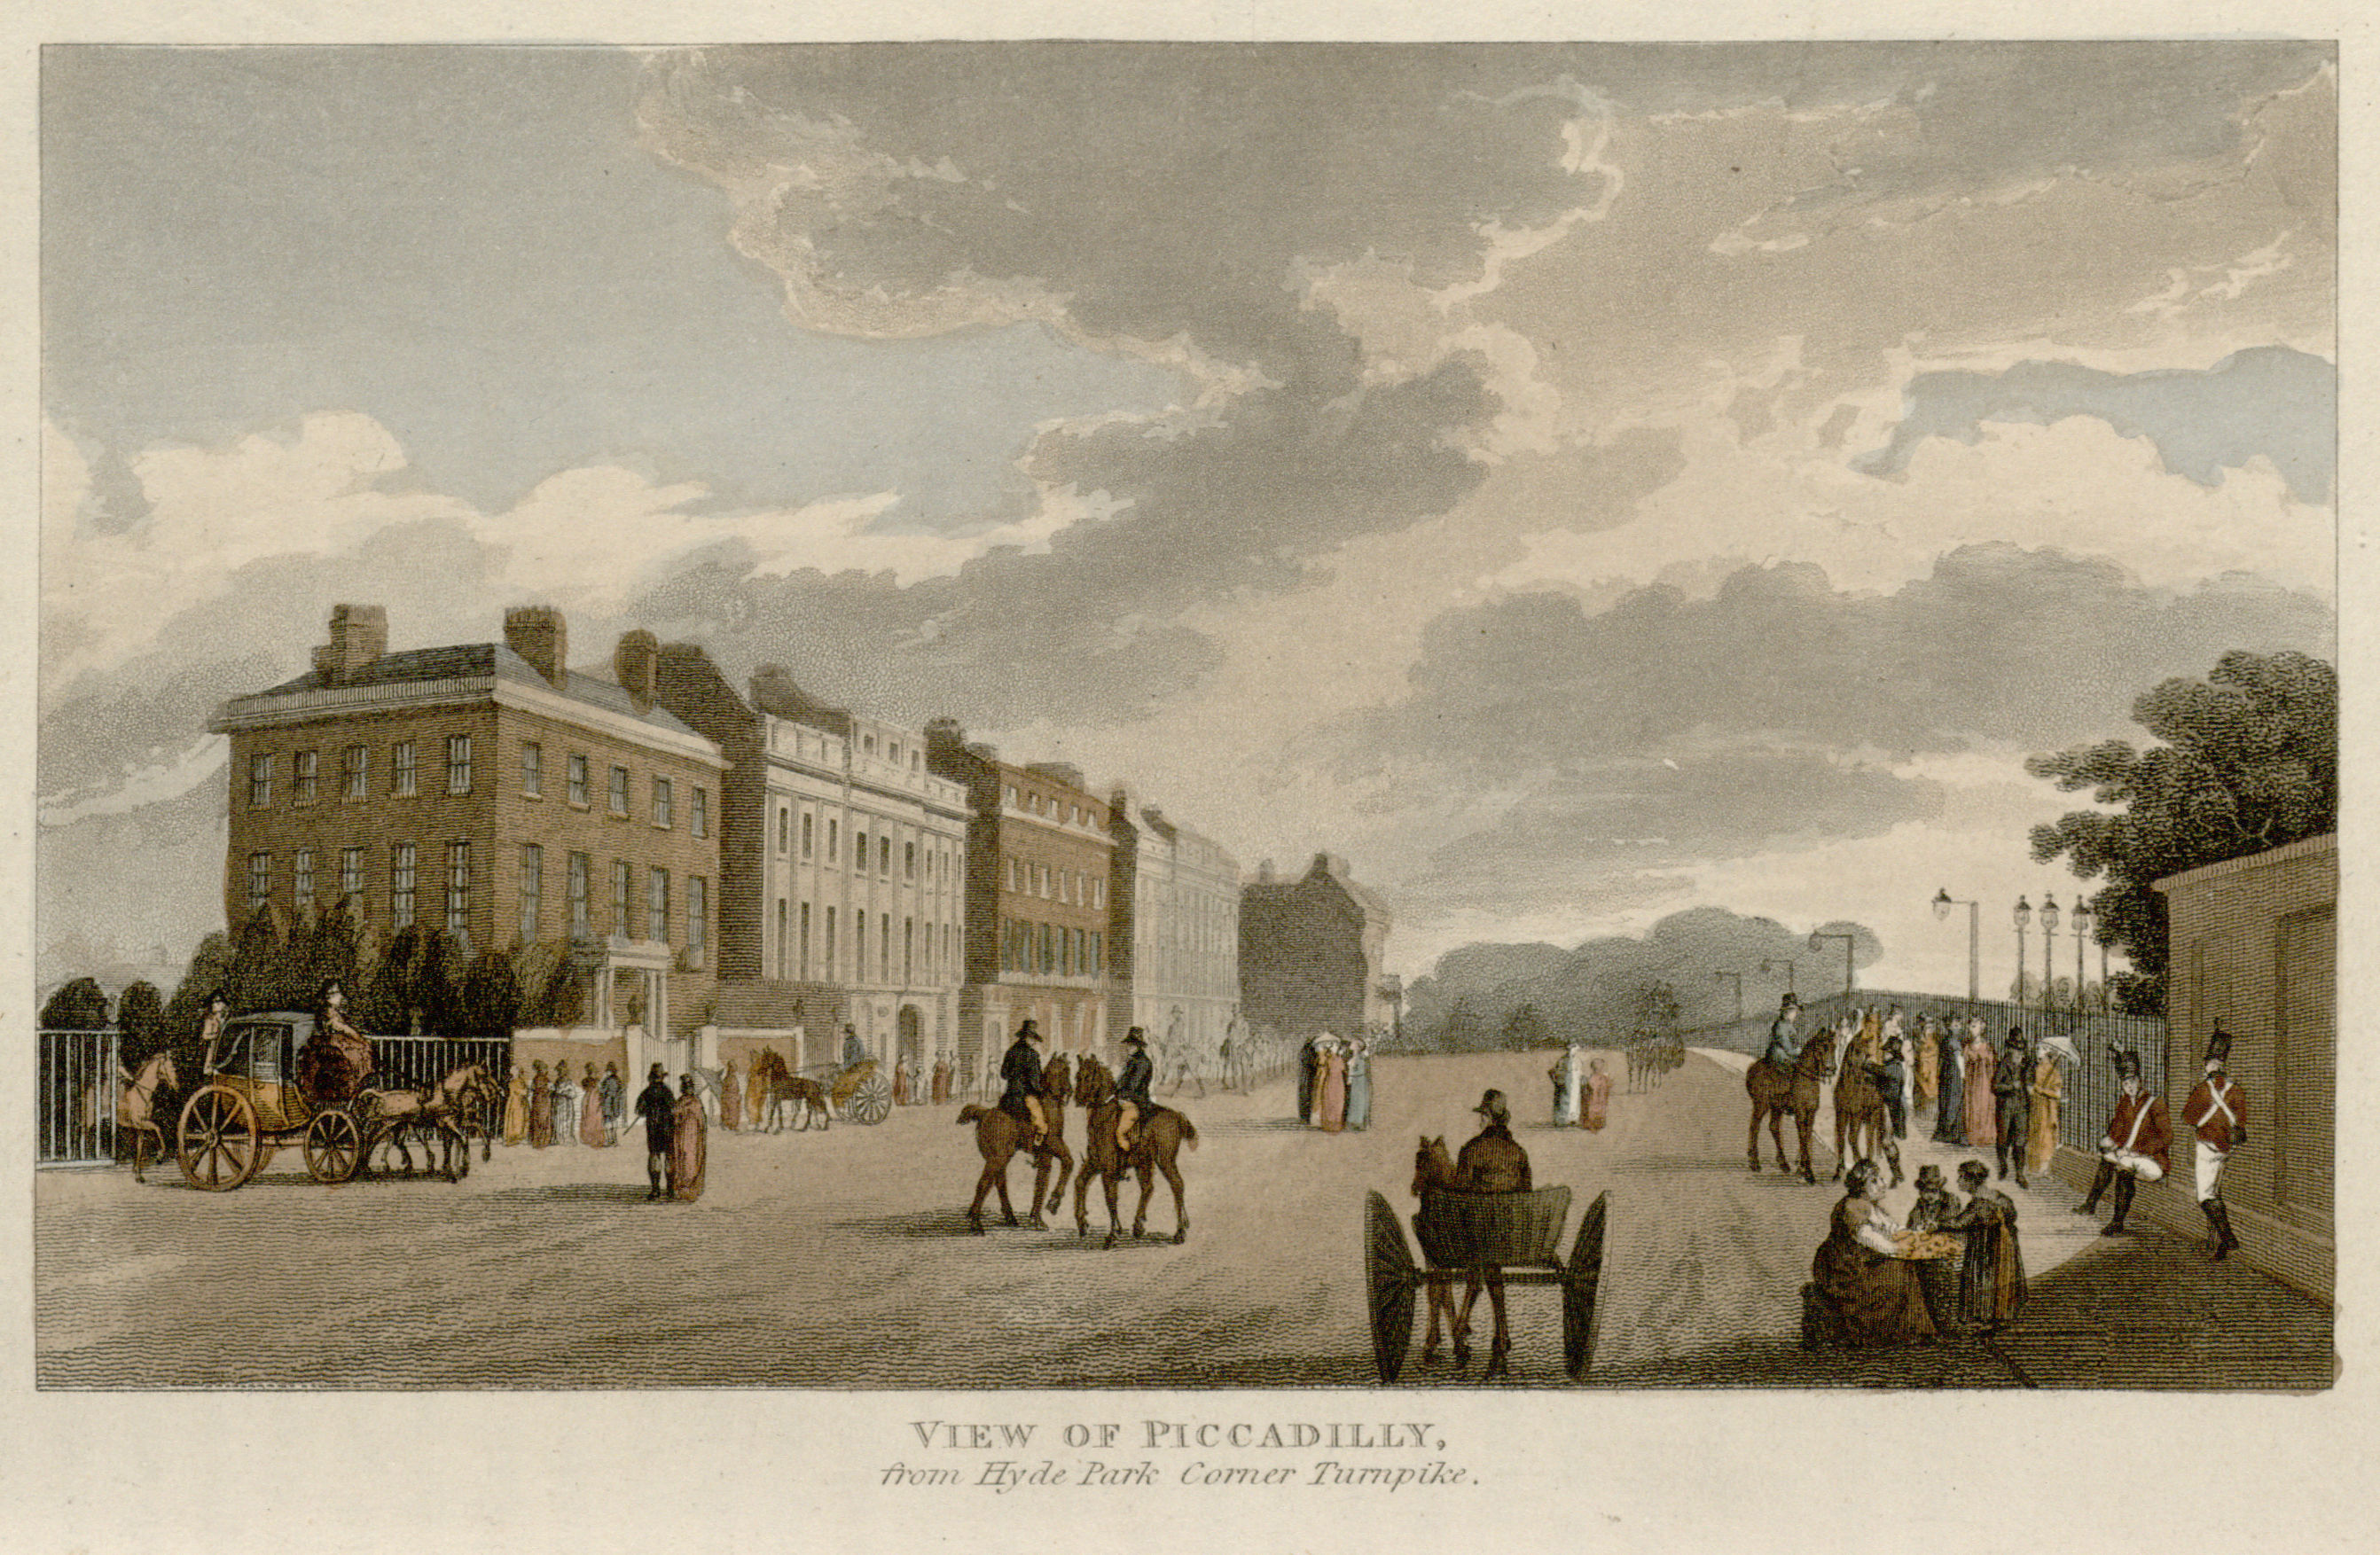 48 - Papworth - View of Piccadilly, from Hyde Park Corner Turnpike